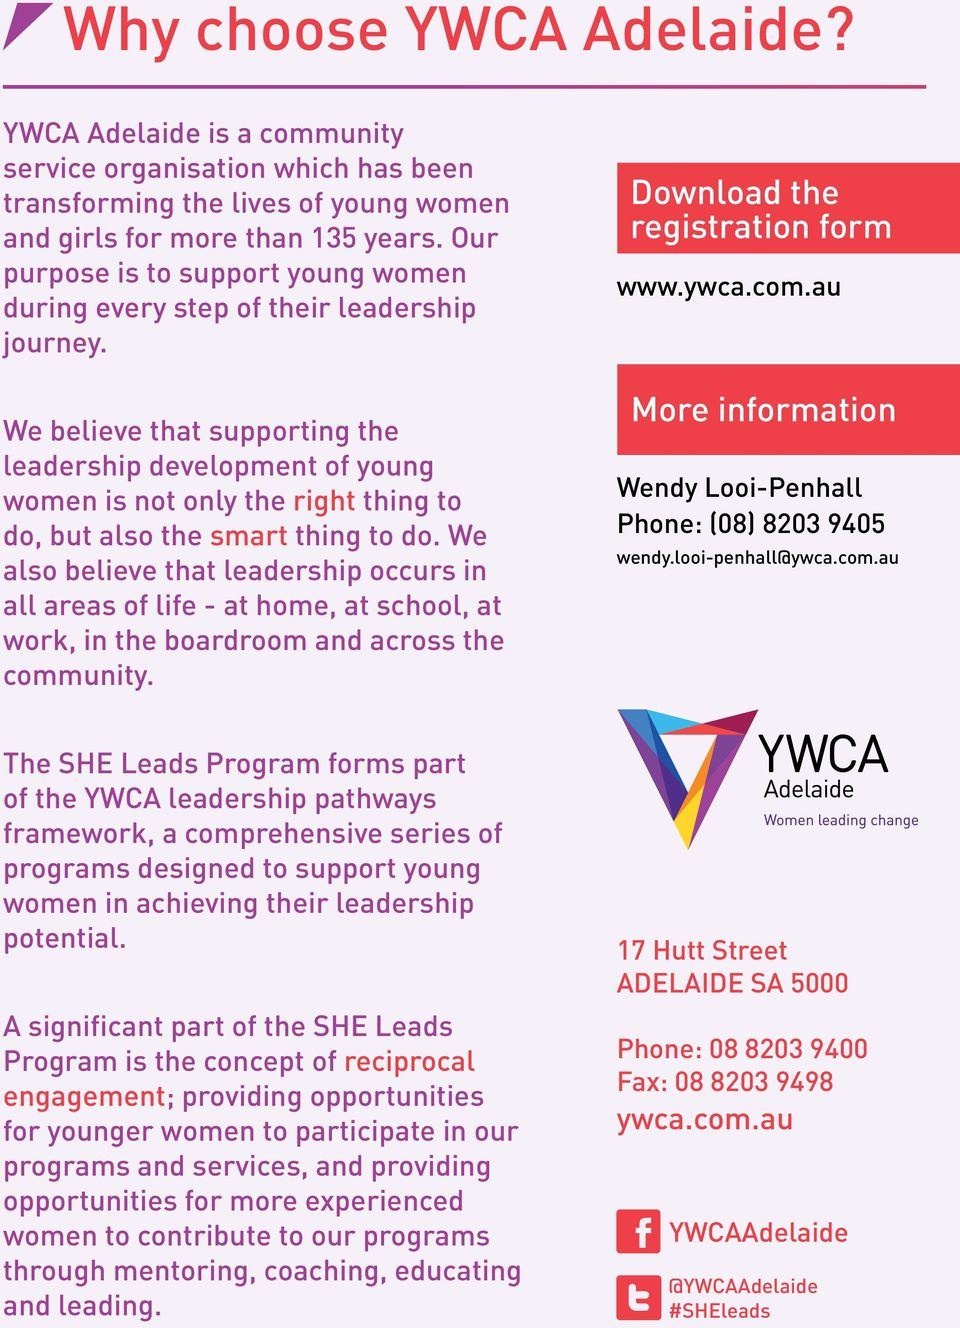 We believe that supporting the leadership development of young women is not only the right thing to do, but also the smart thing to do.